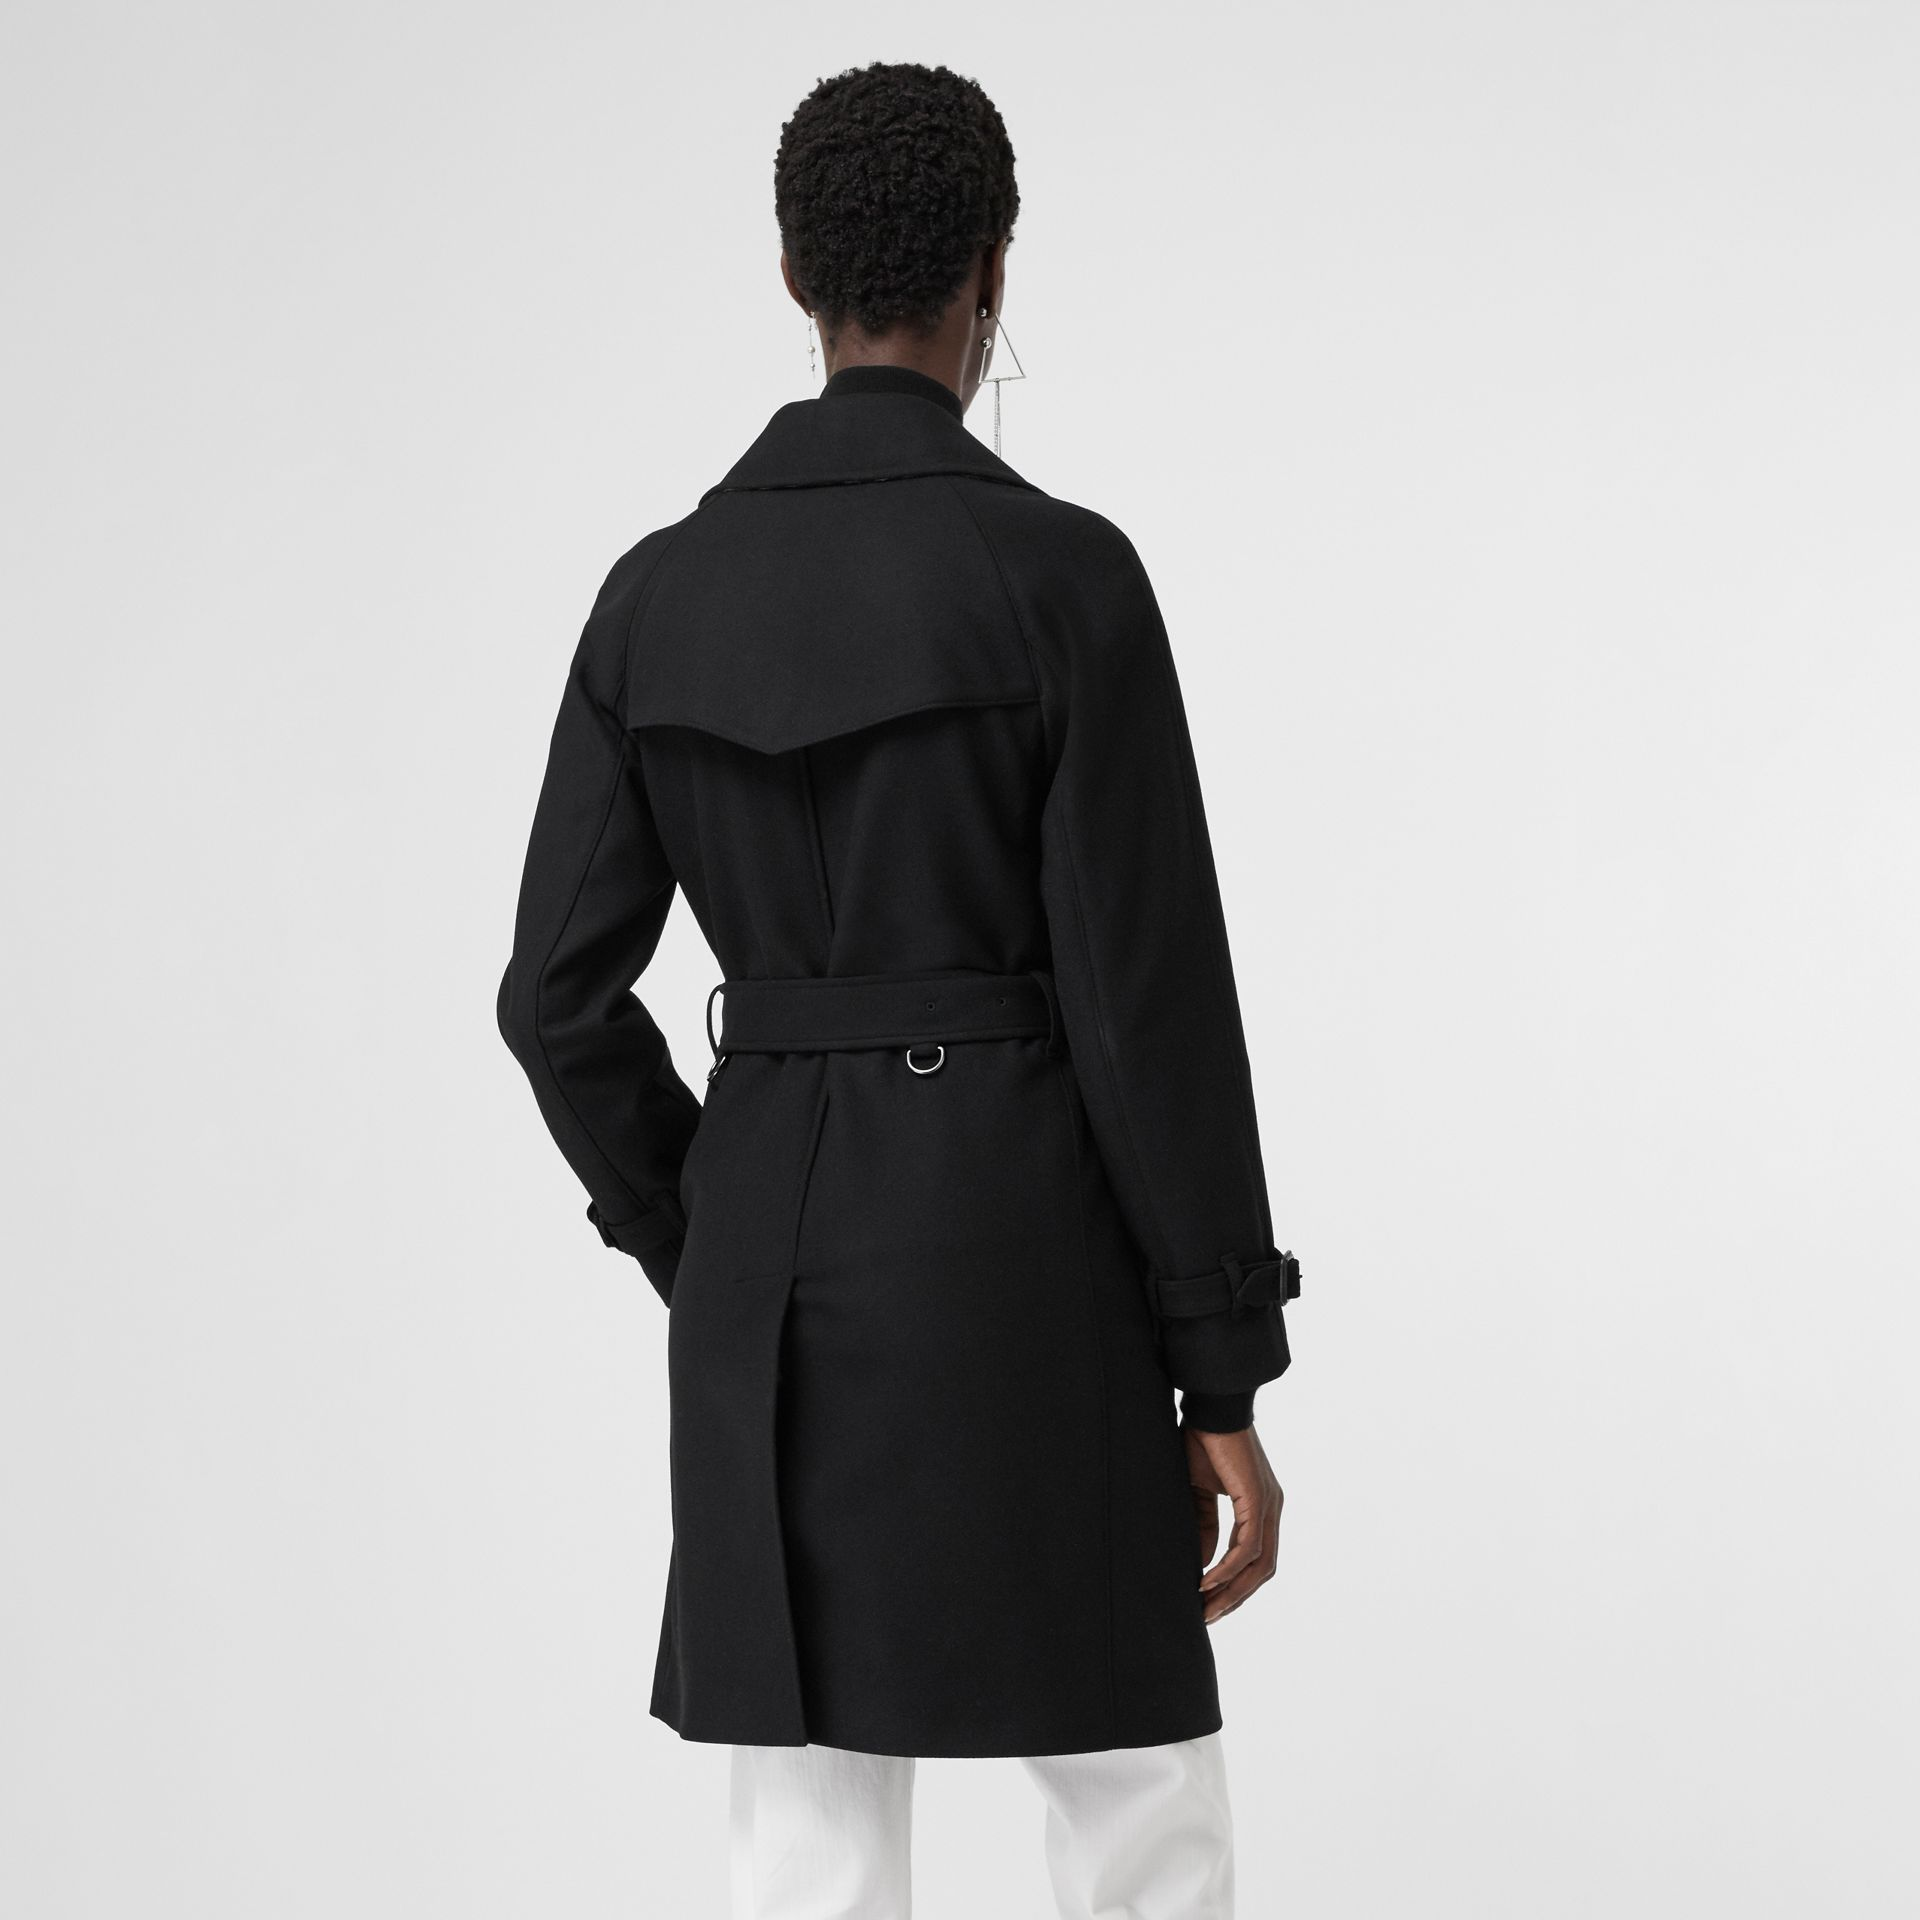 Herringbone Wool Cashmere Blend Trench Coat in Black - Women | Burberry - gallery image 2